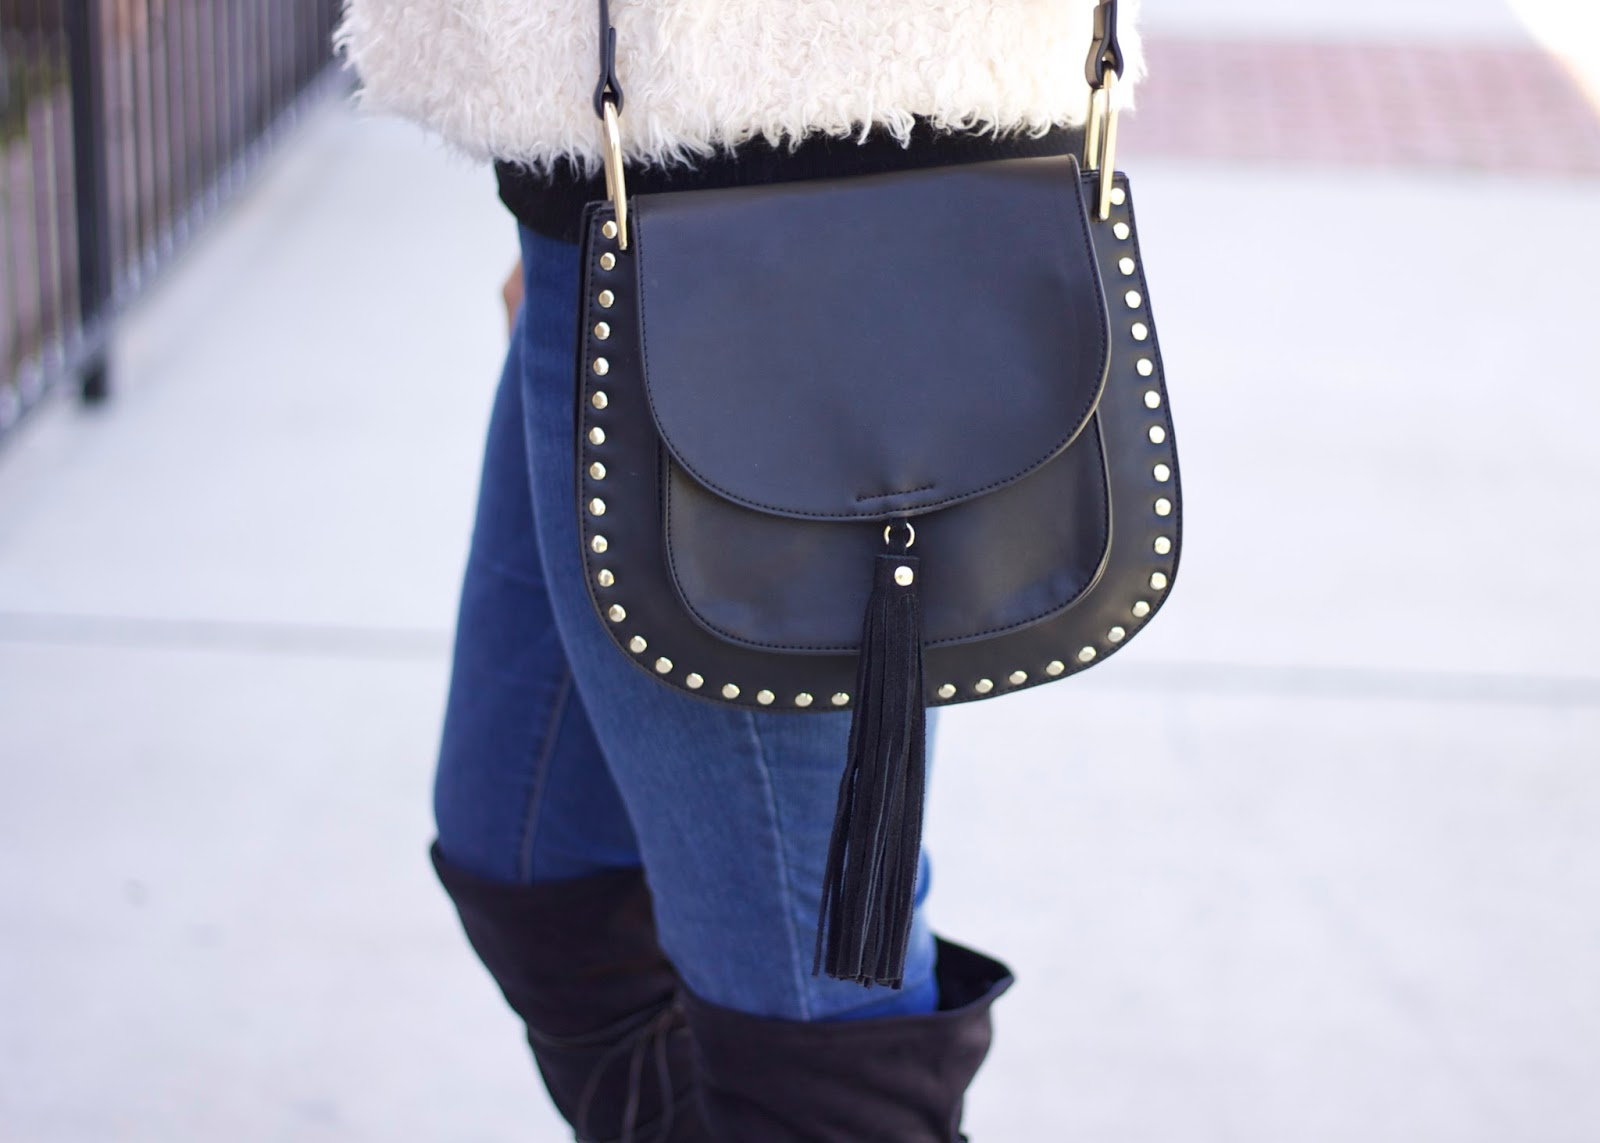 Galian Adabelle Handbag, Galian blogger, affordable handbags, high quality purses under $100